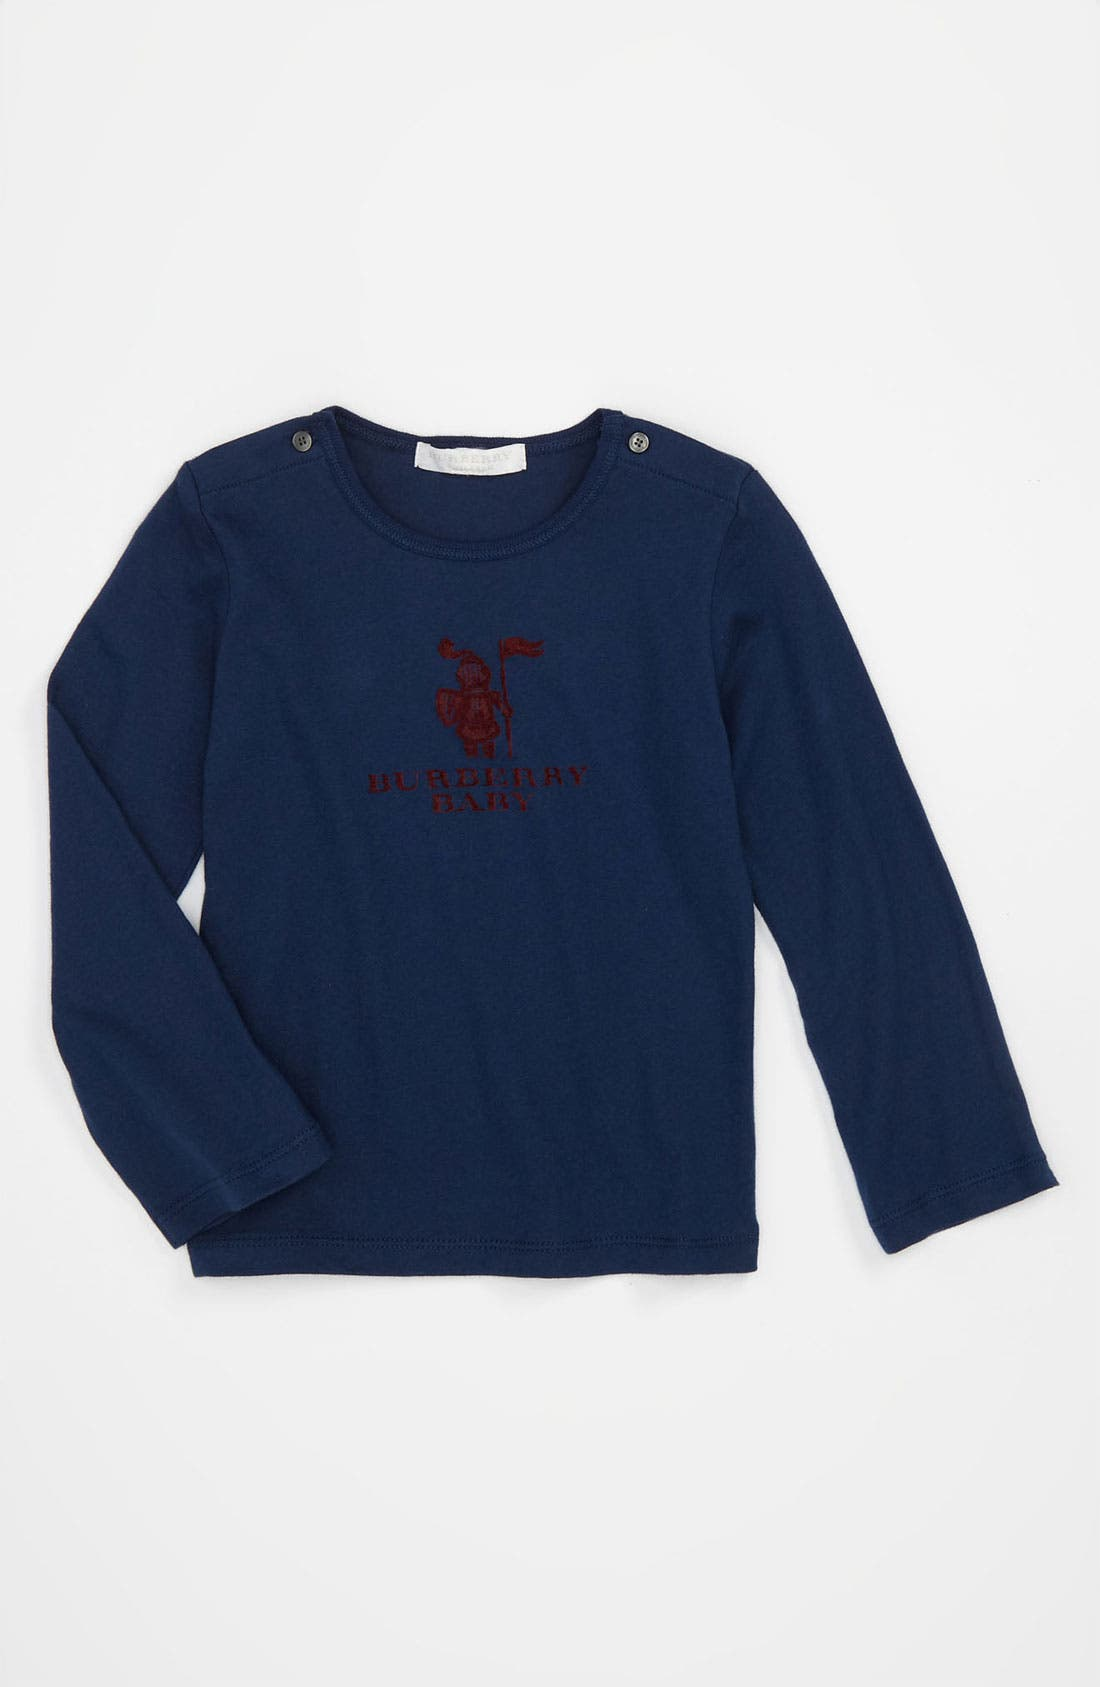 Main Image - Burberry Long Sleeve T-Shirt (Infant)